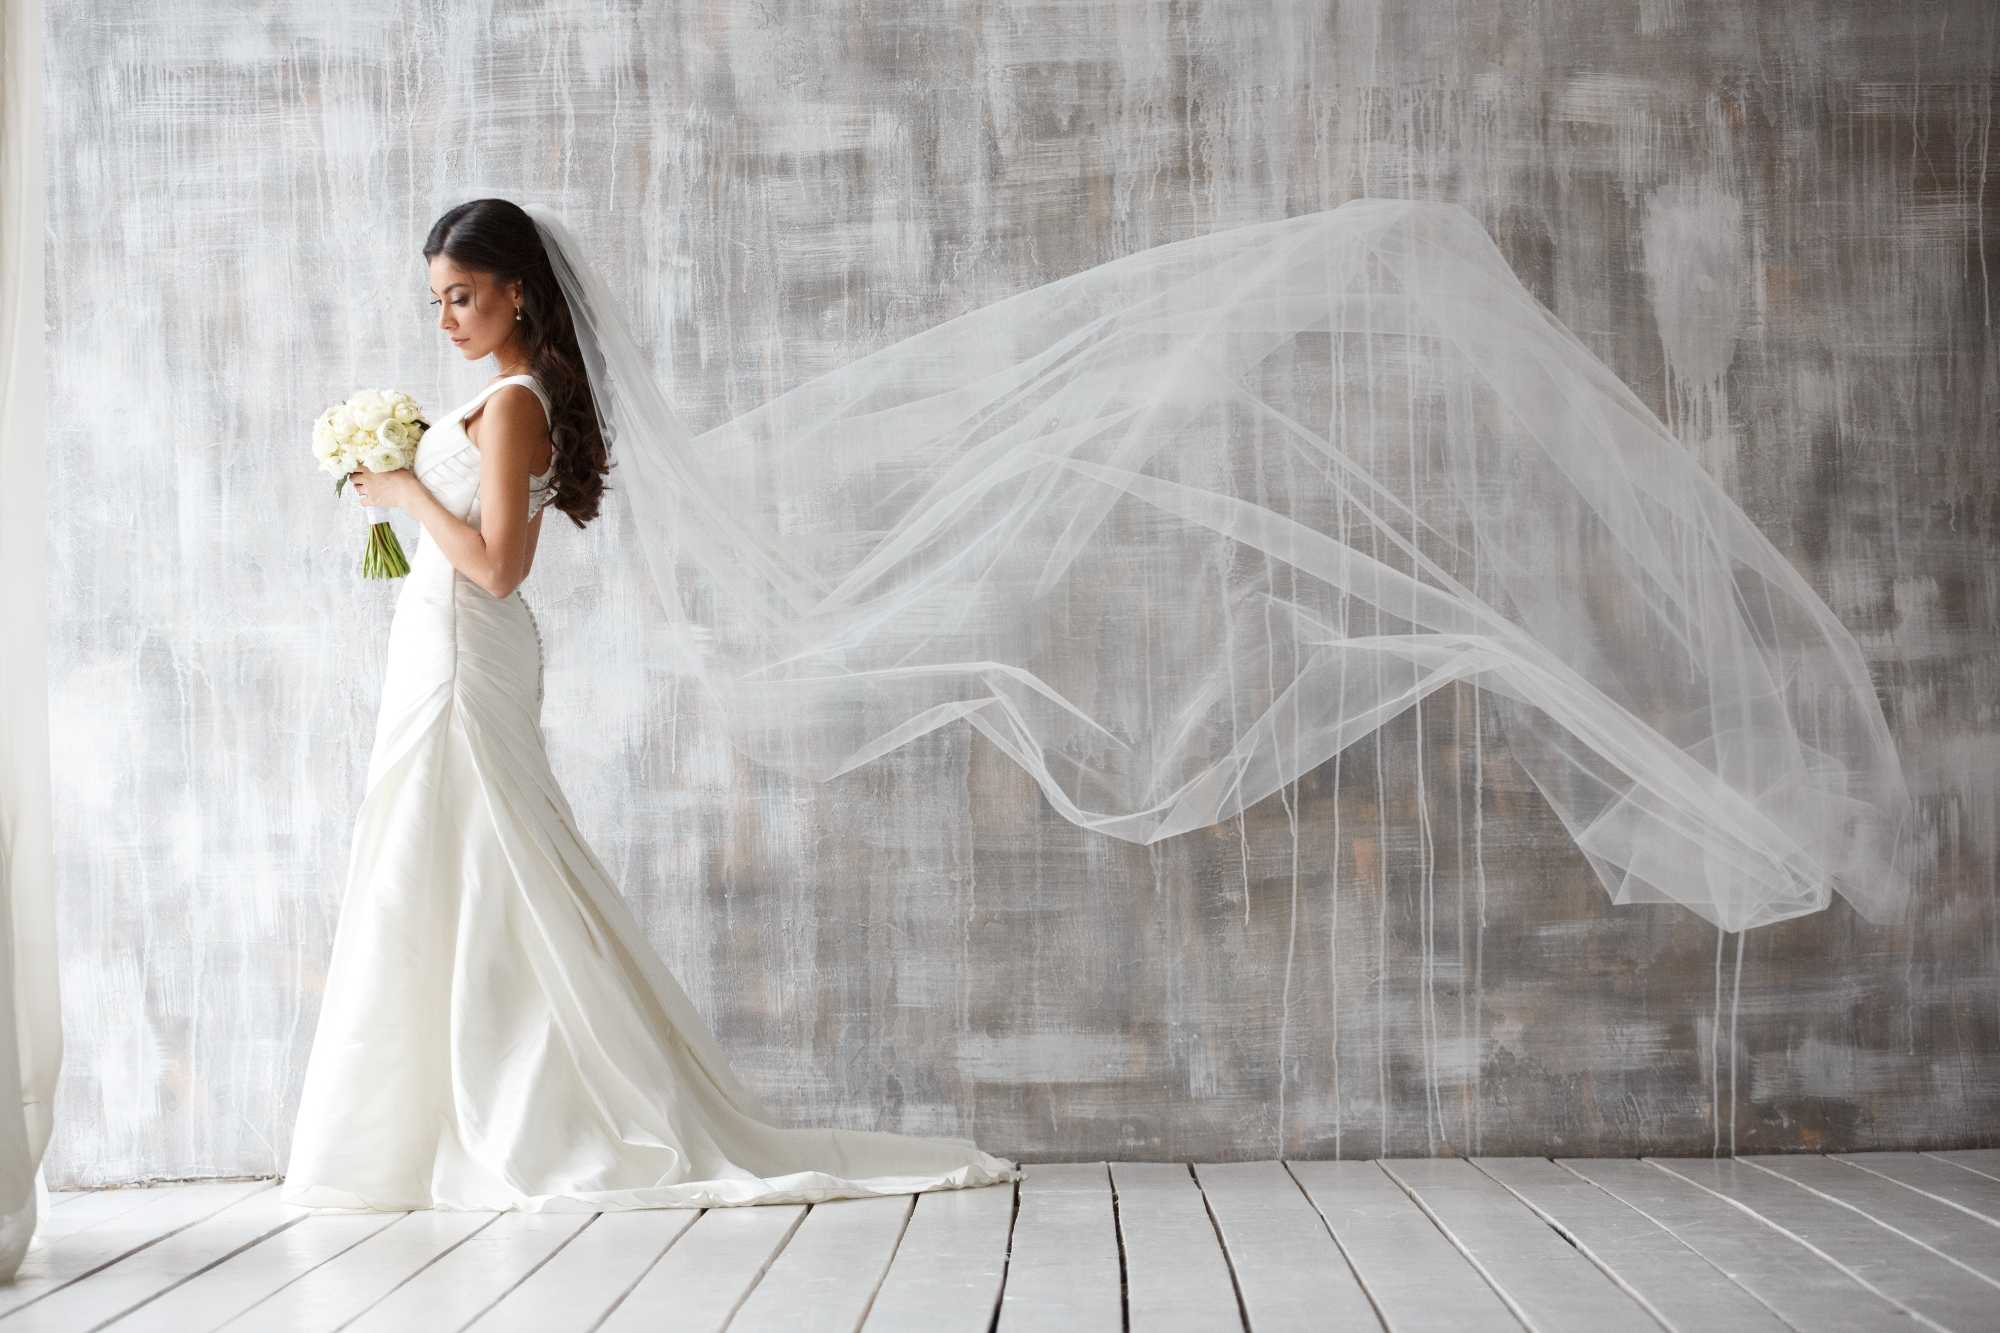 Wedding bridal veil guide q&a